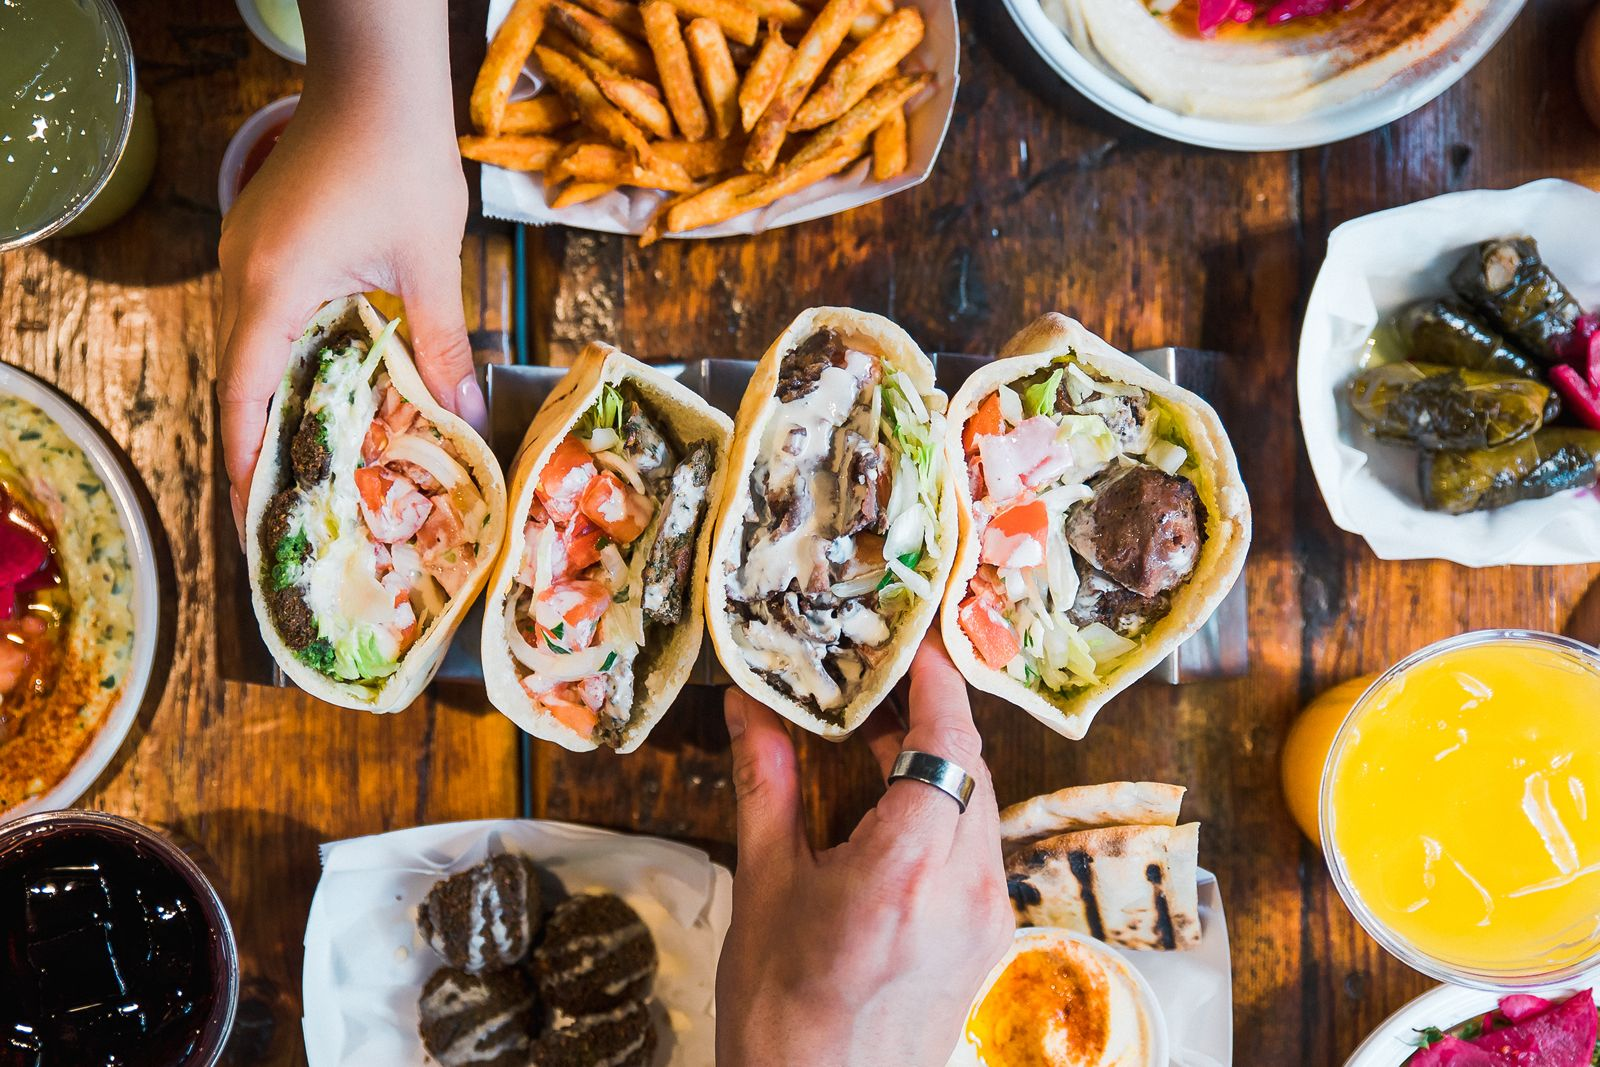 Iconic NYC legacy brand, Mamoun's Falafel, is celebrating the Grand Opening of its first Long Island outpost in Syosset, NY (408 Jericho Turnpike) on Saturday, July 7 at 11 AM.